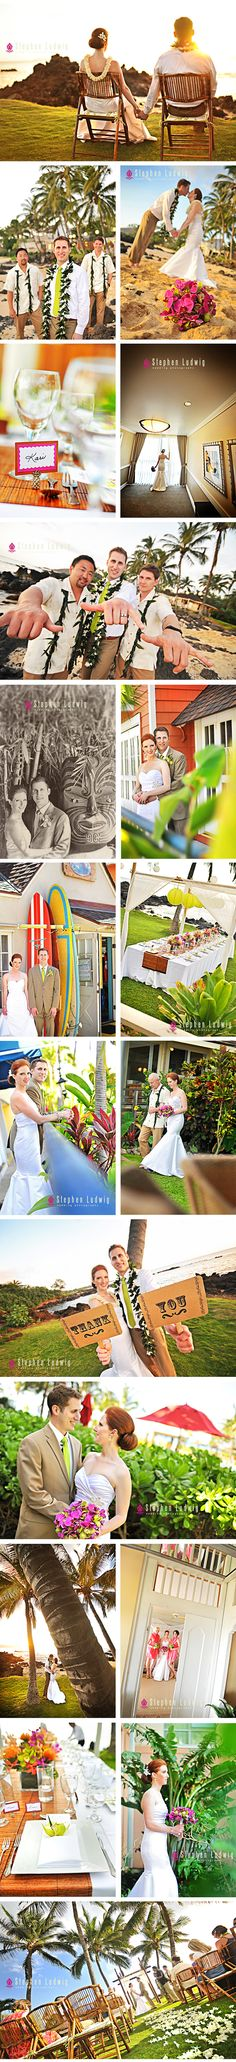 perfect wedding hawaii